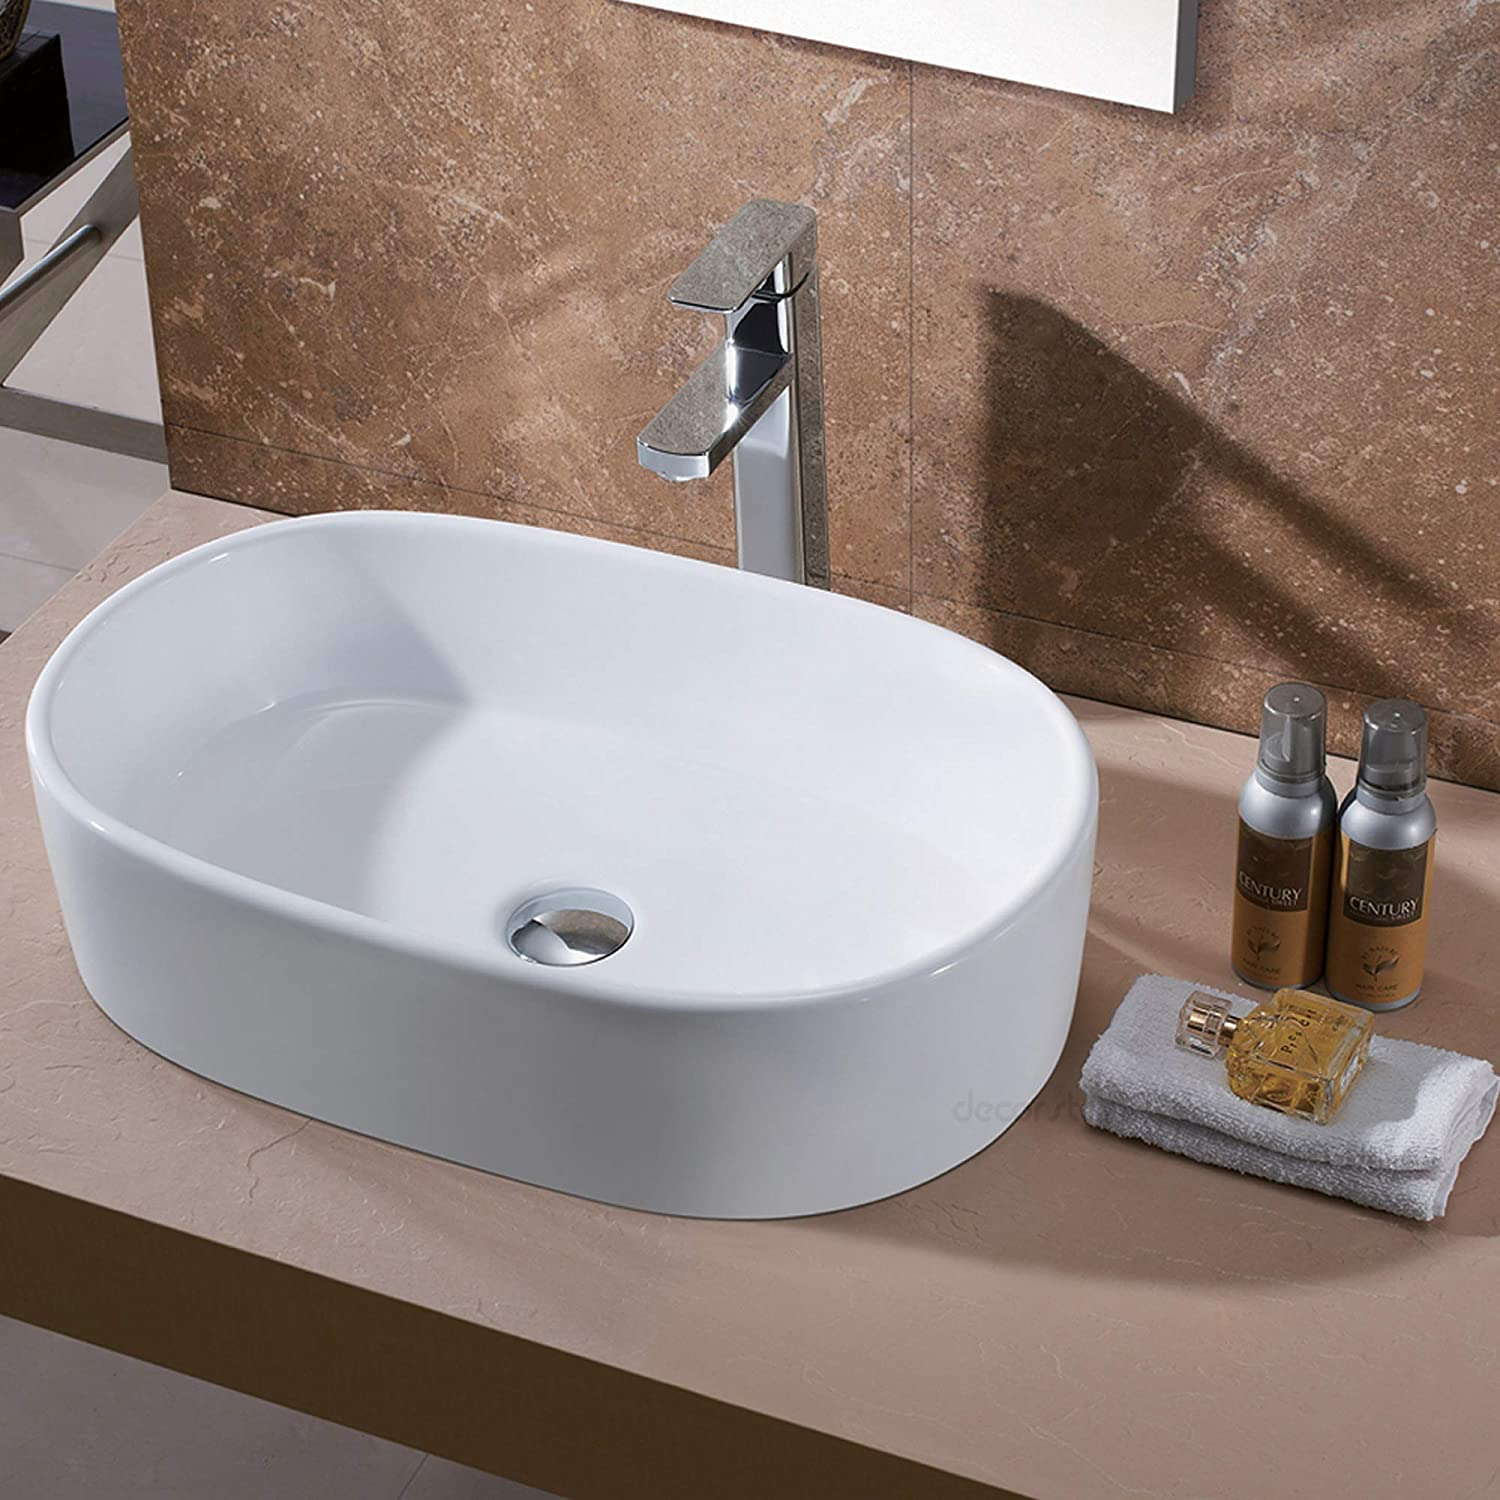 Luxier CS-002 Bathroom Porcelain Ceramic Vessel Vanity Sink Art Basin